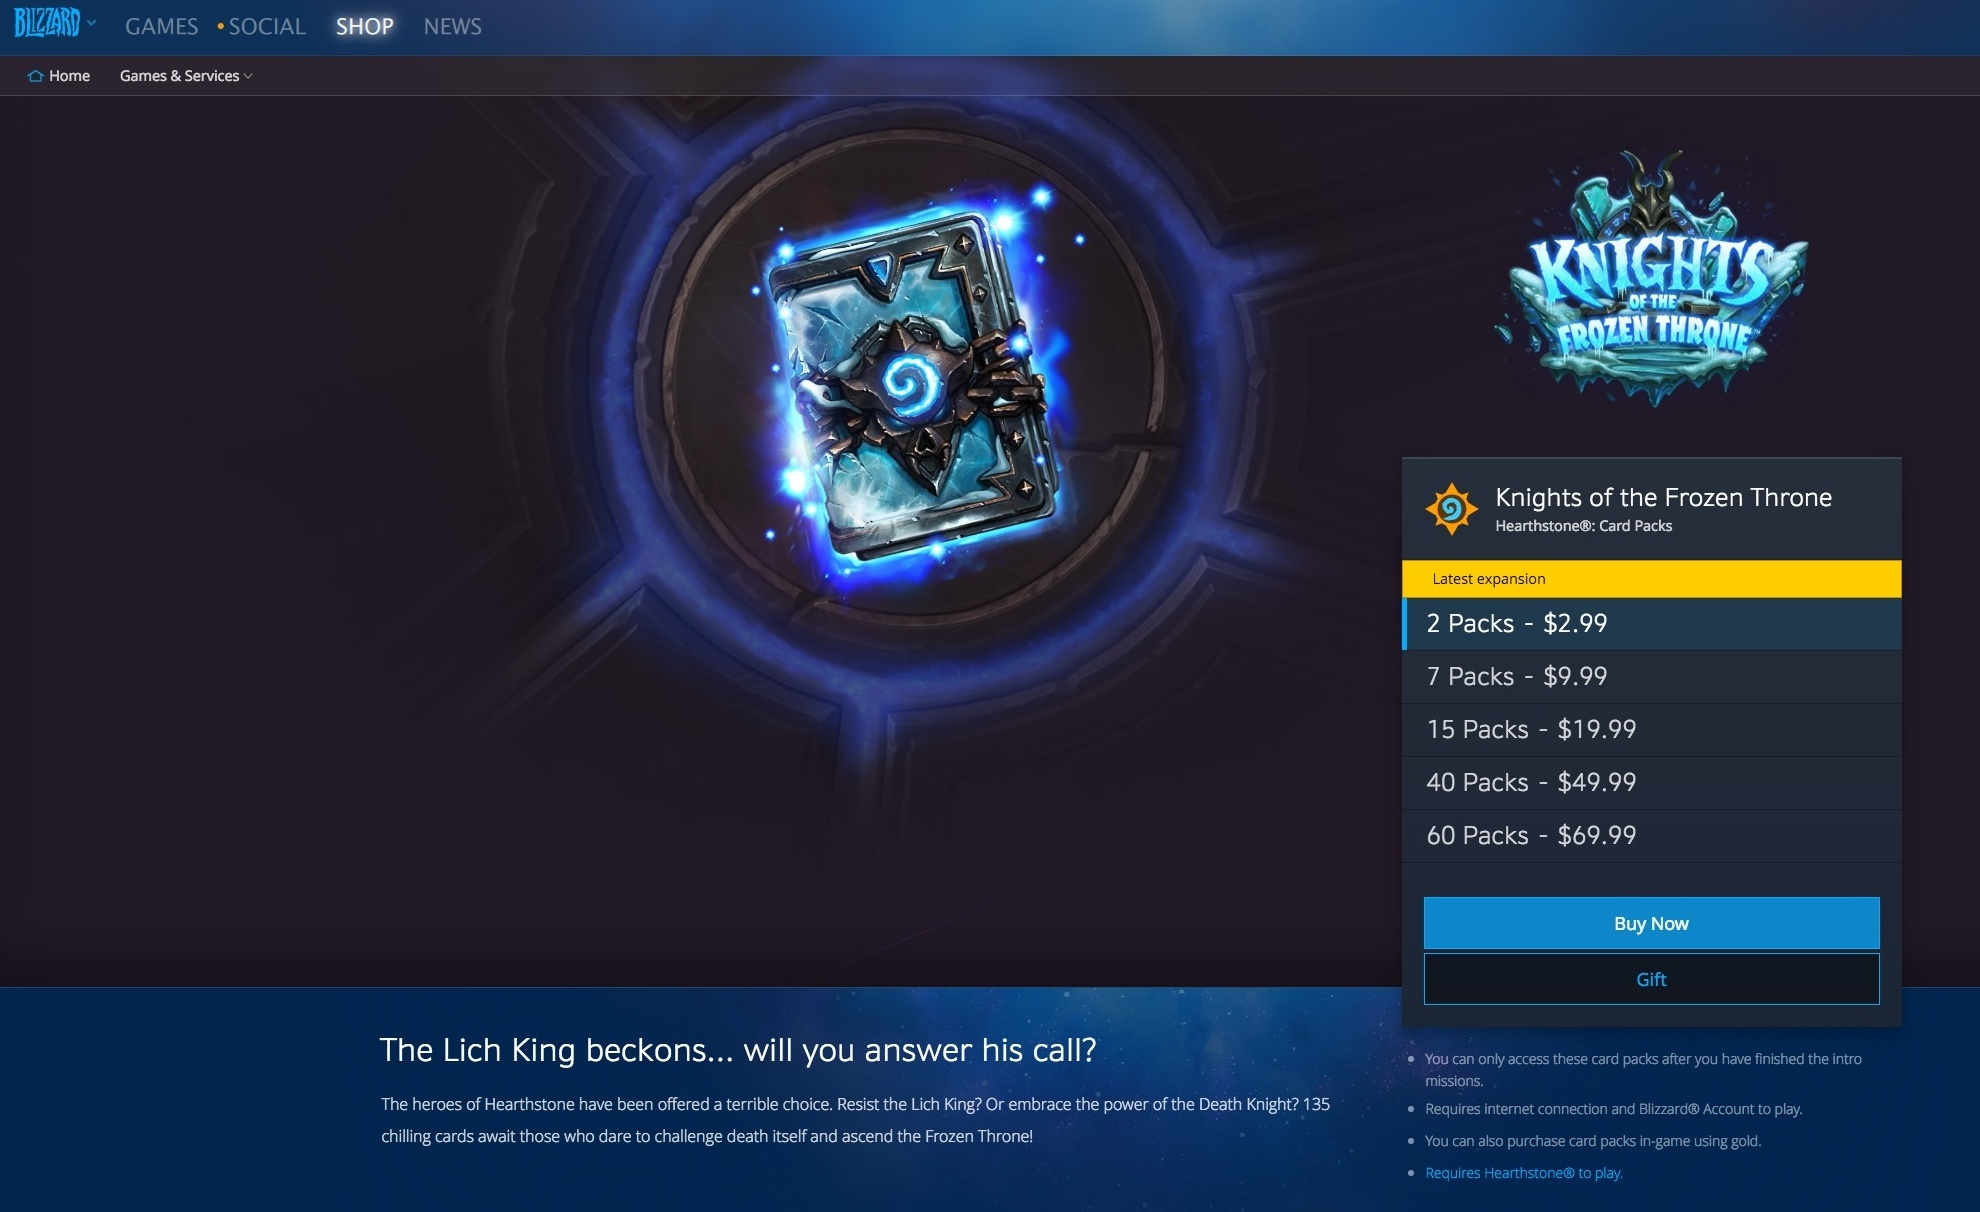 Gifting Now Available to BattleTag Friends Through Blizzard